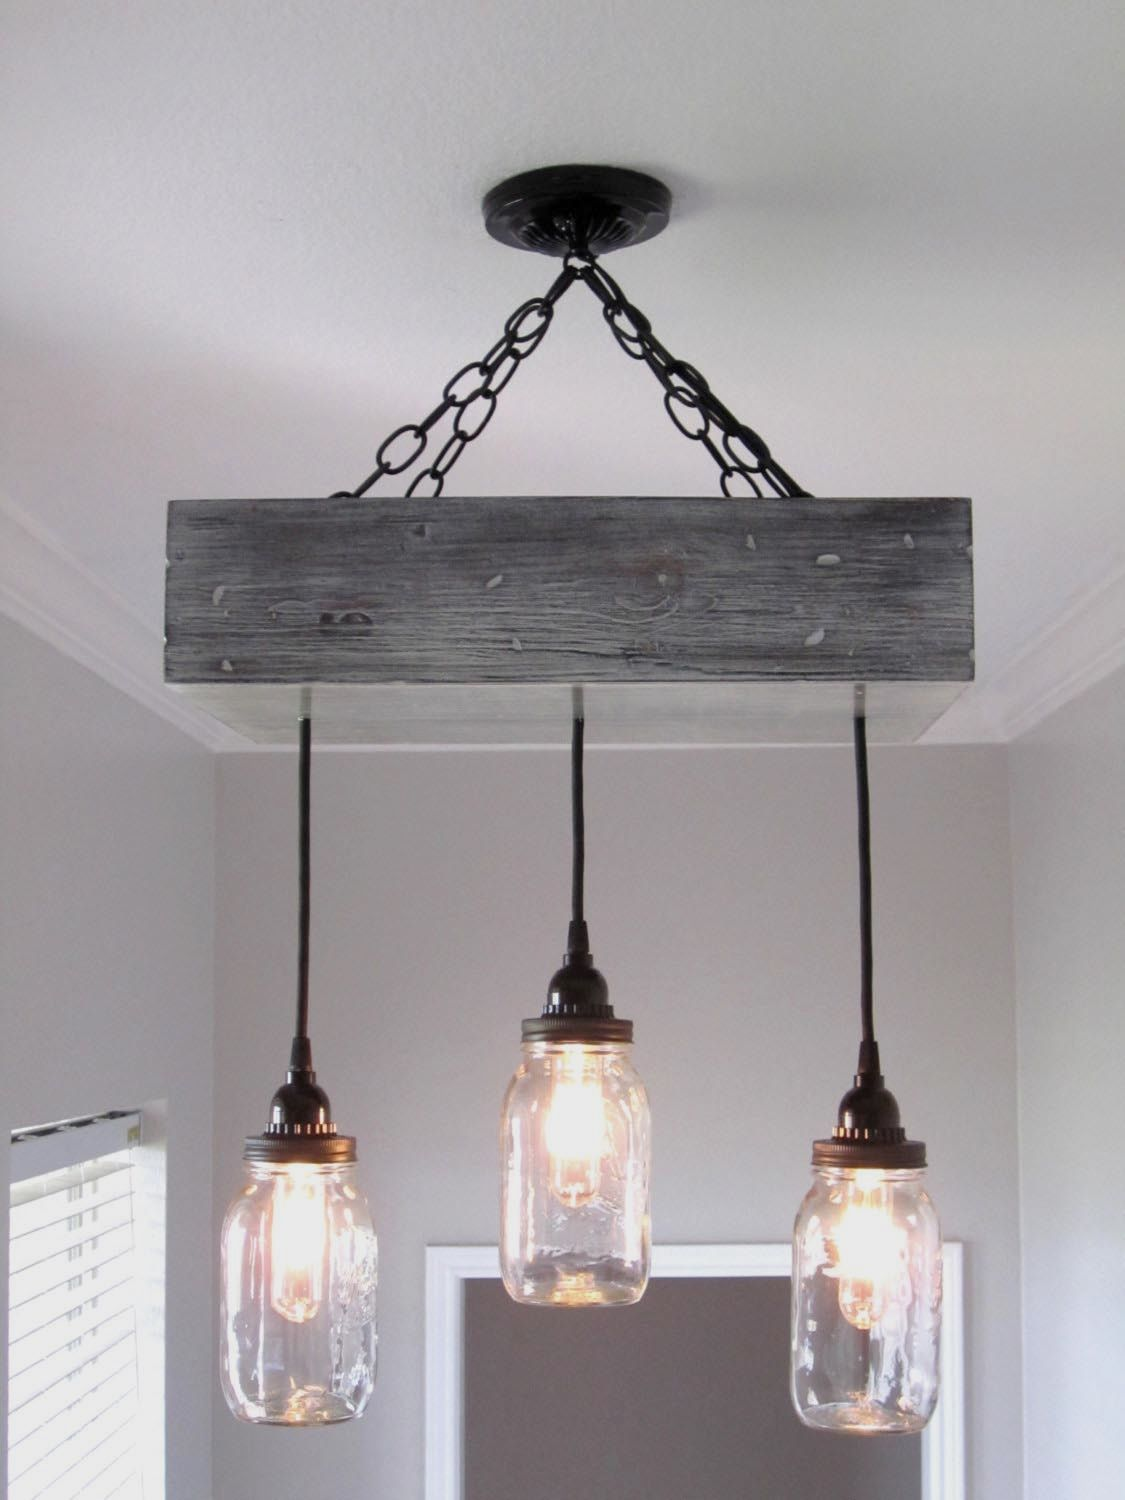 Creative Rustic Lighting Fixture Ideas To Complete A Cottage Farmhouse Ceiling Light Fixtures Rustic Ceiling Lights Rustic Light Fixtures Rustic Lighting